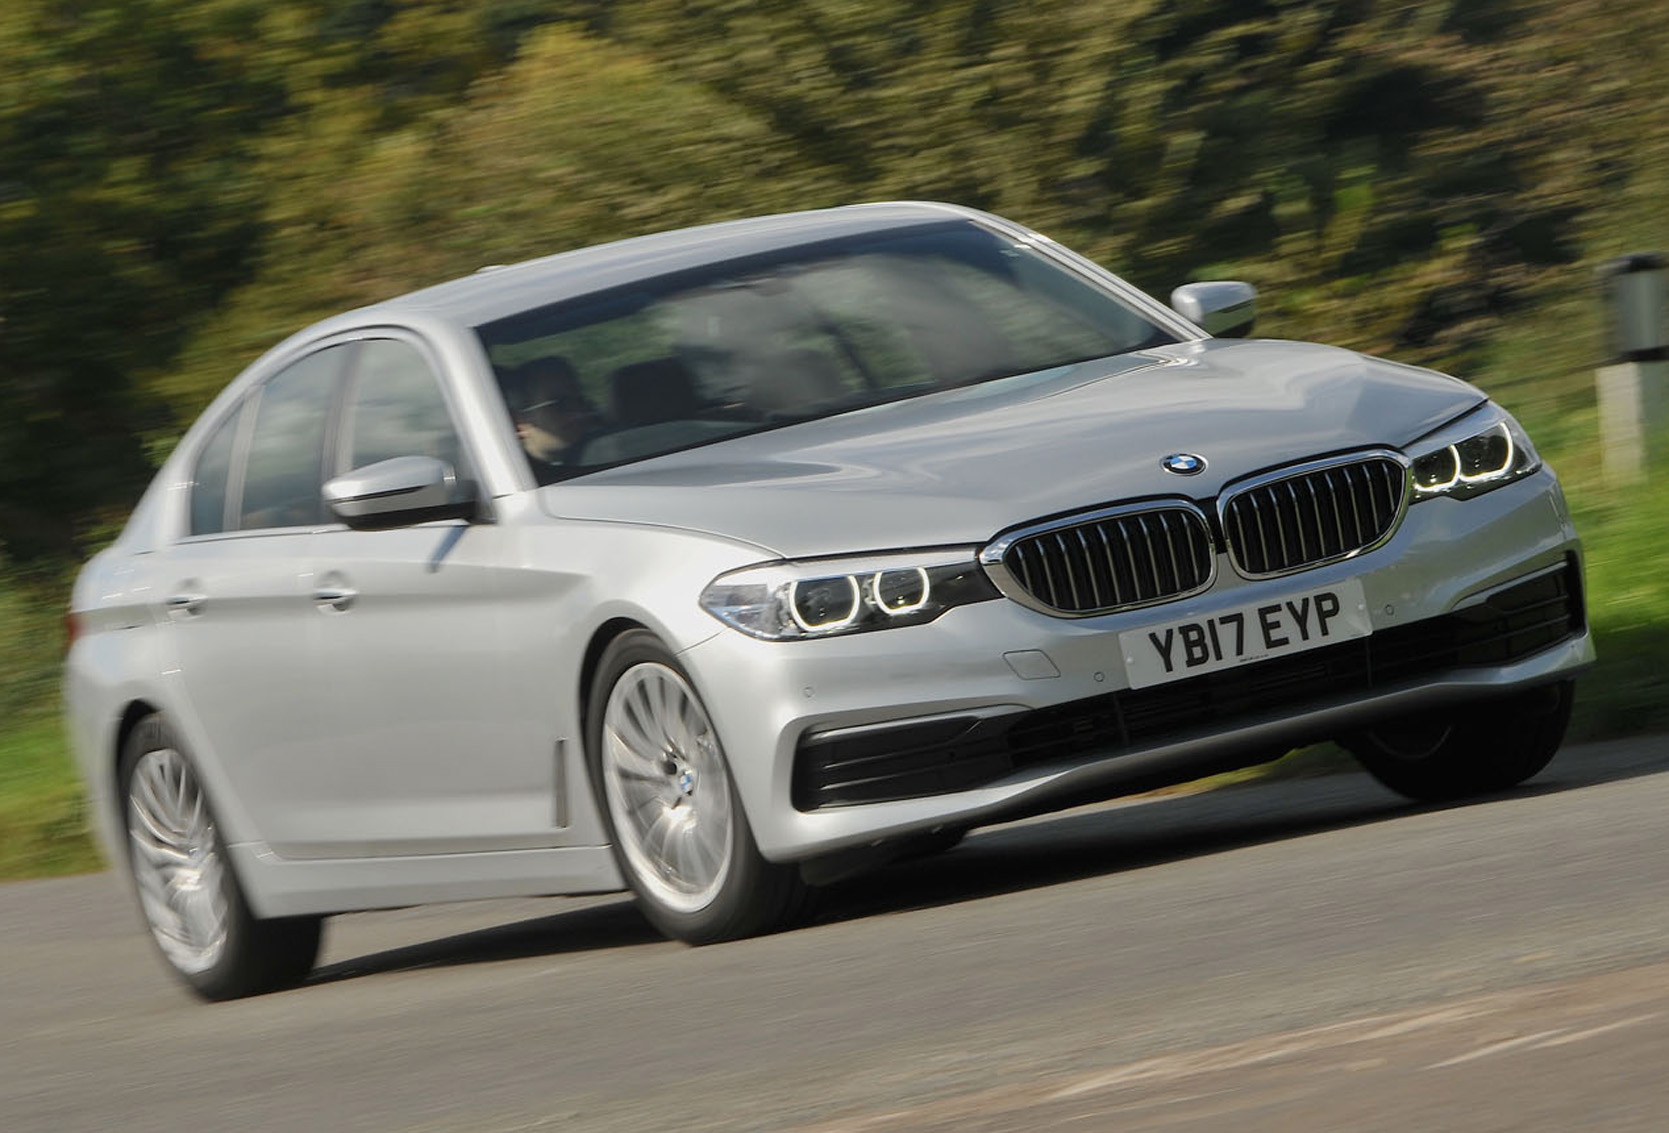 BMW 5 Series: Calling up settings